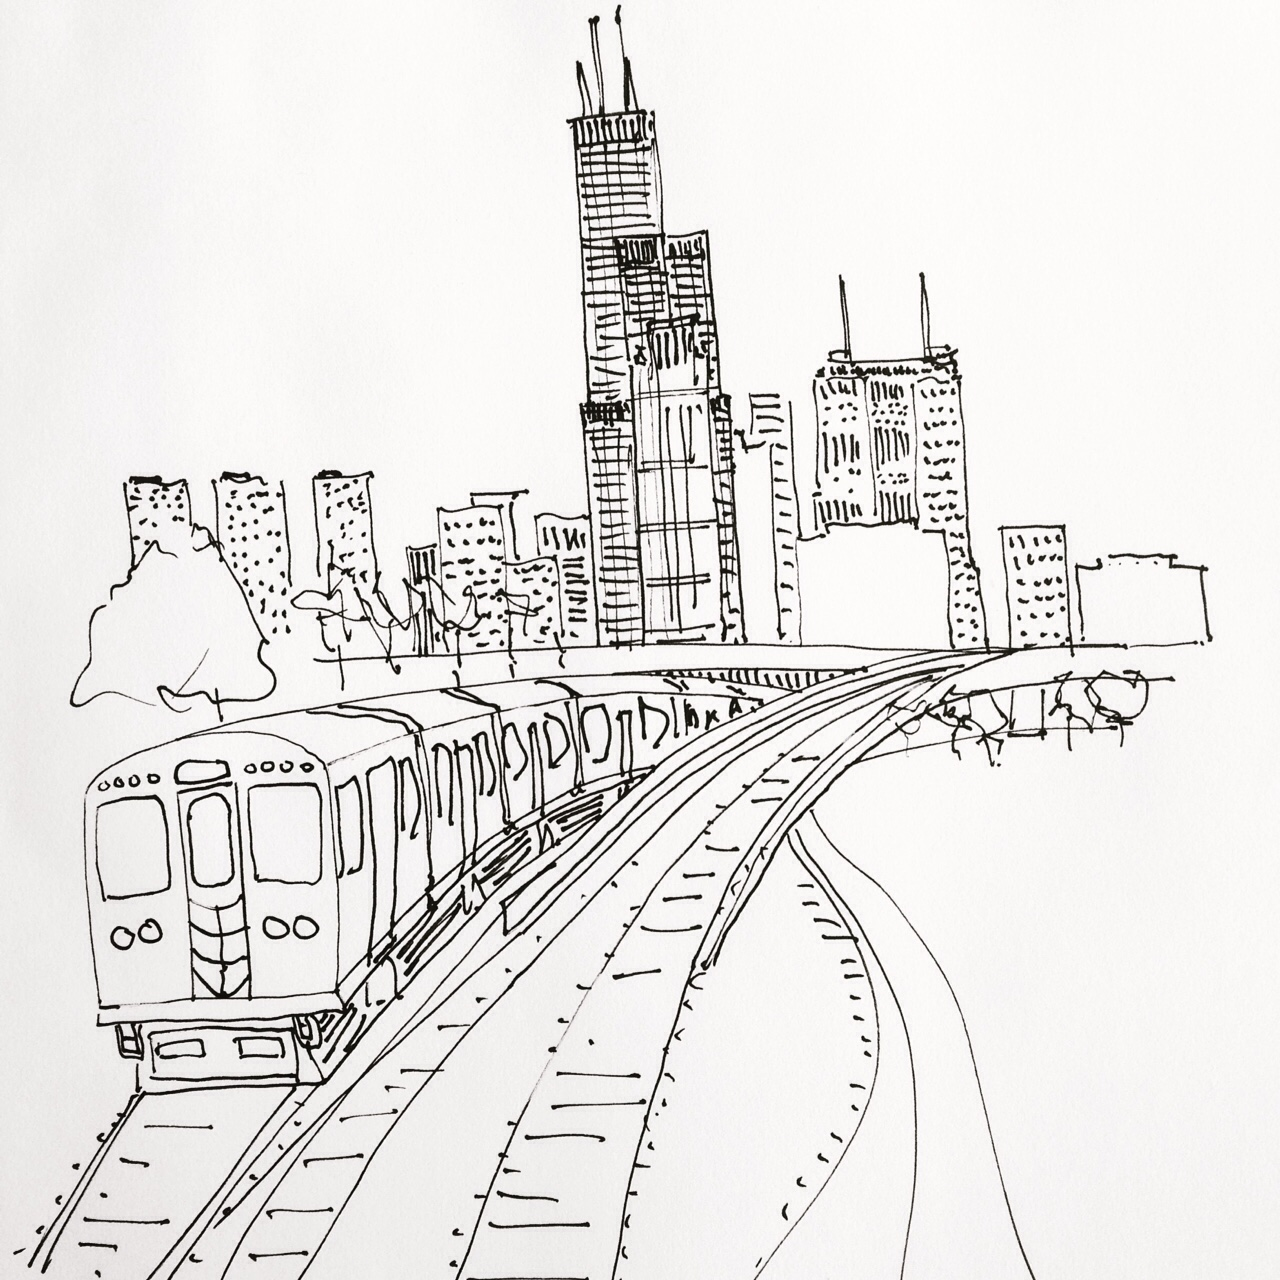 1280x1280 Sketchbook Art Of Chicago Skyline L Train Drawn In Pen